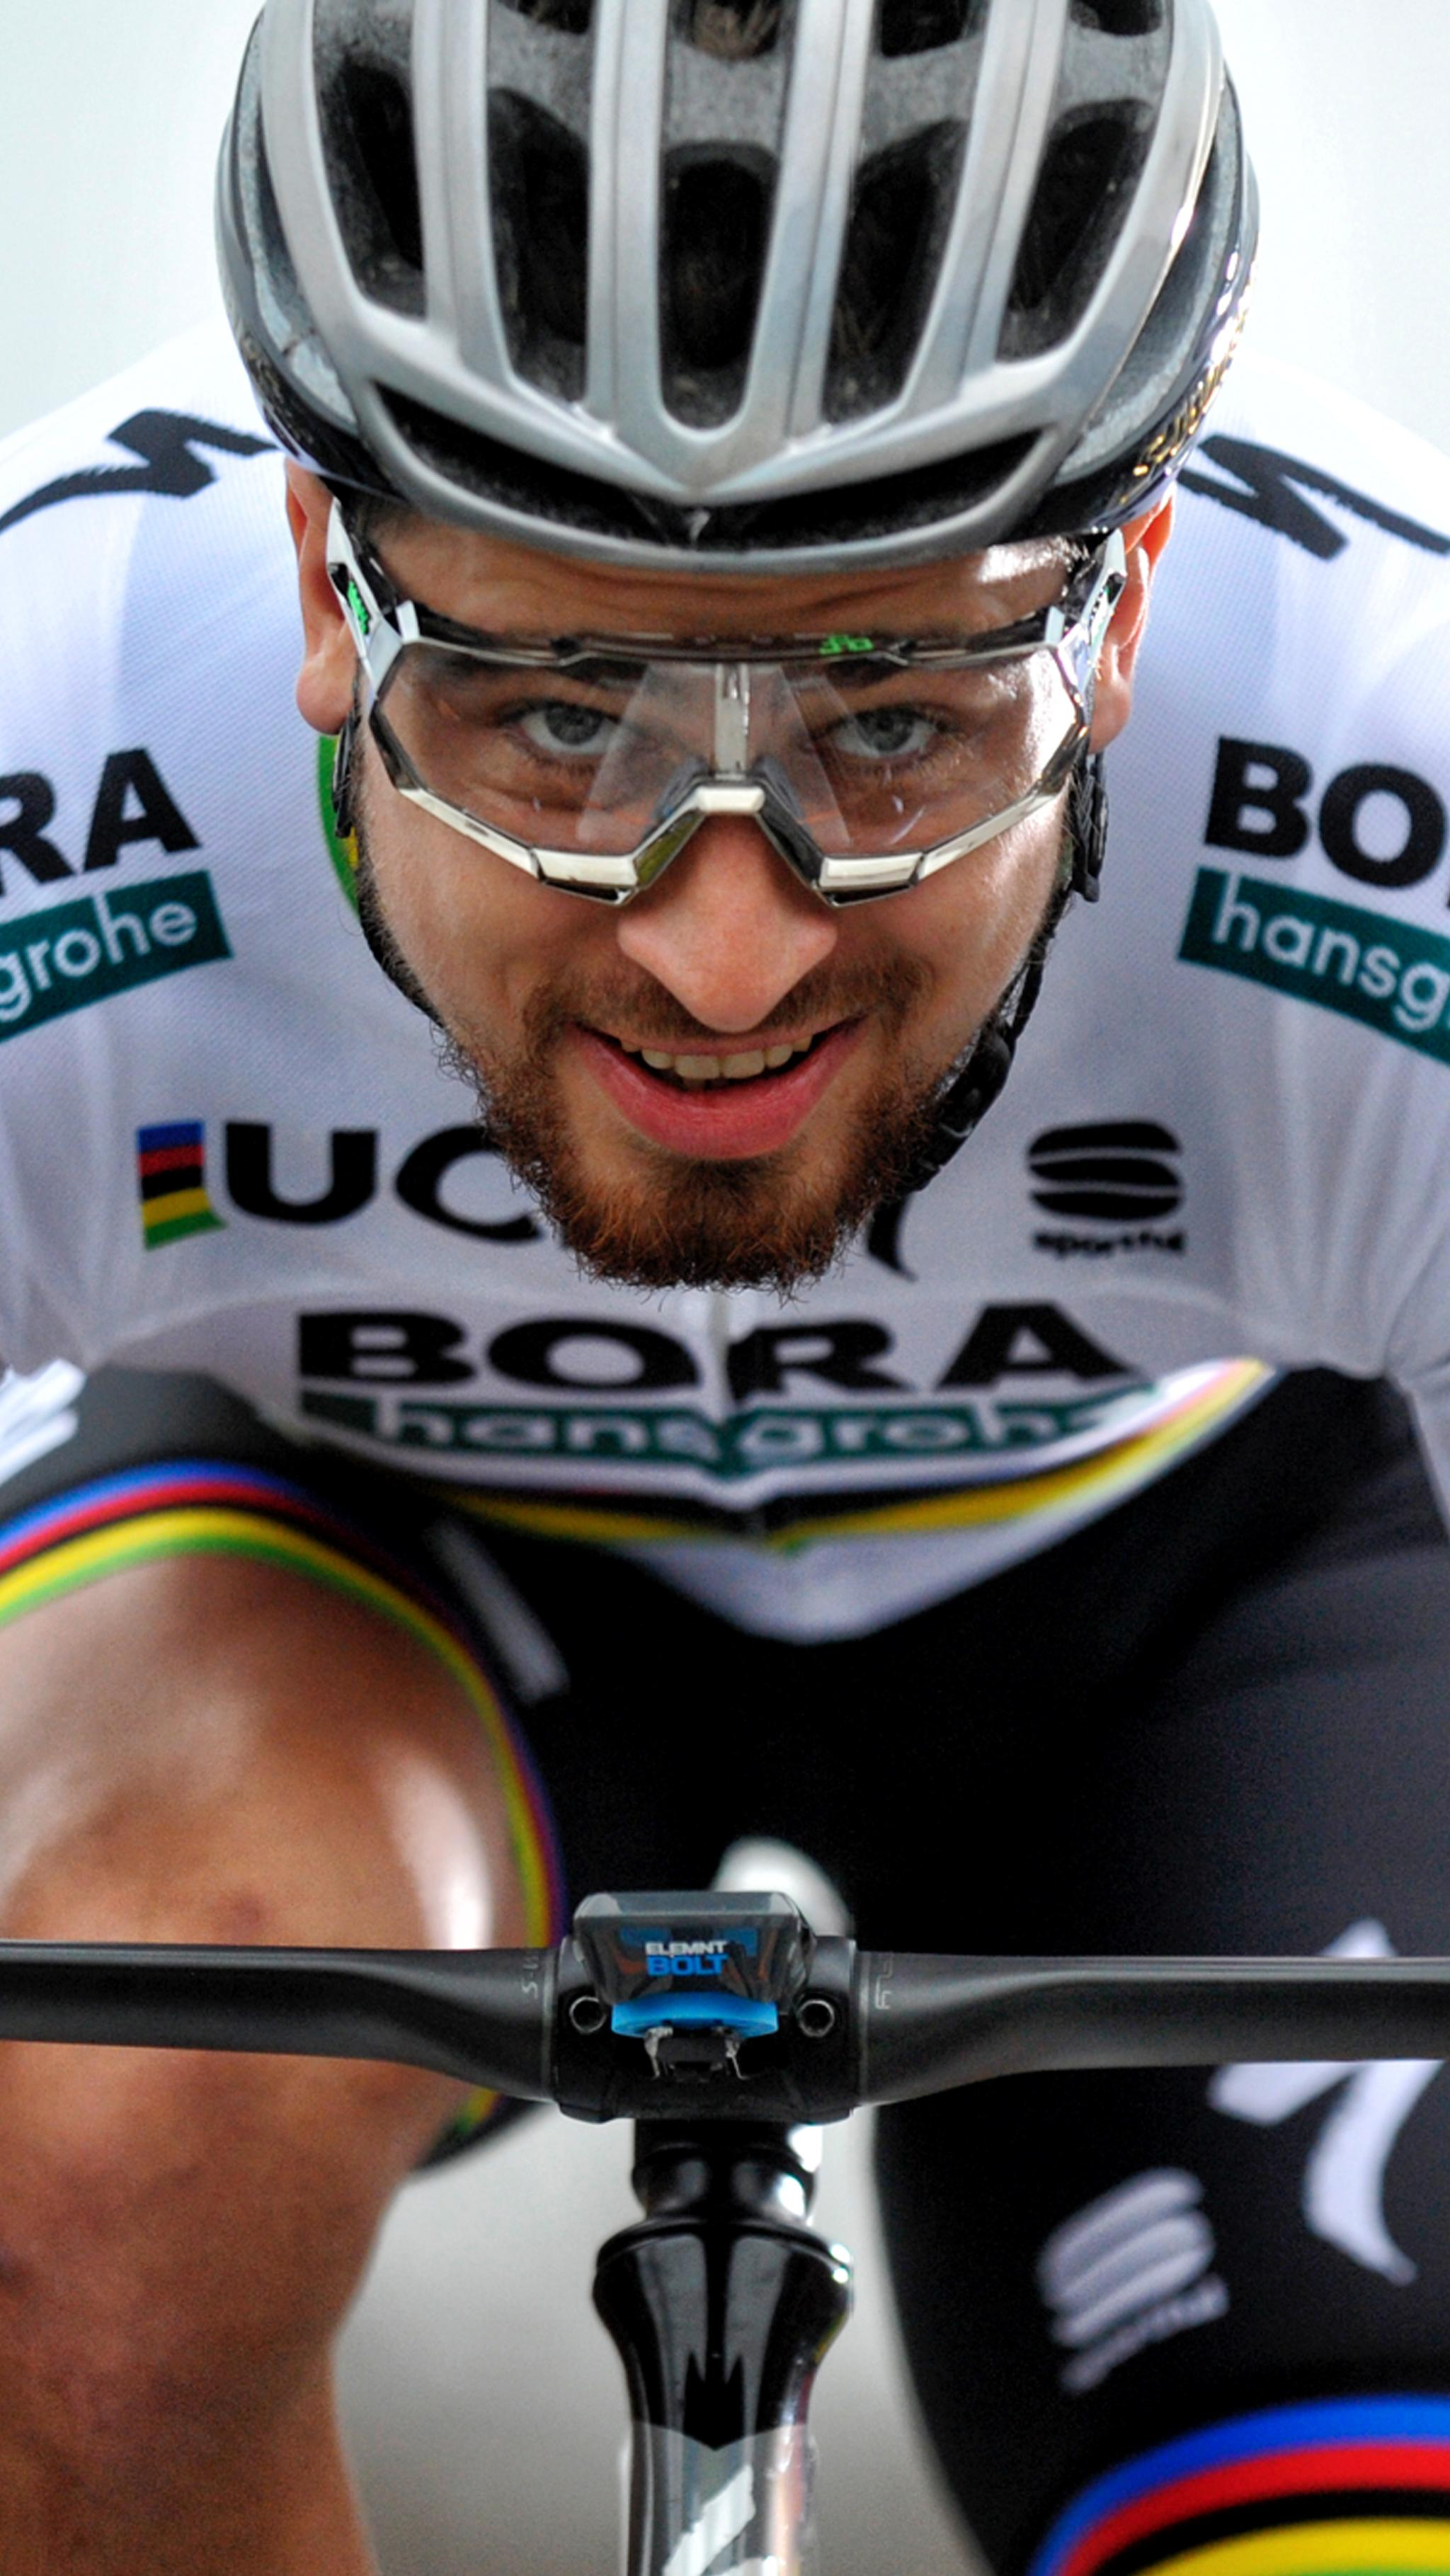 Sponsoring_Peter_Sagan_Fan_Ride_Headerbild_P.jpg